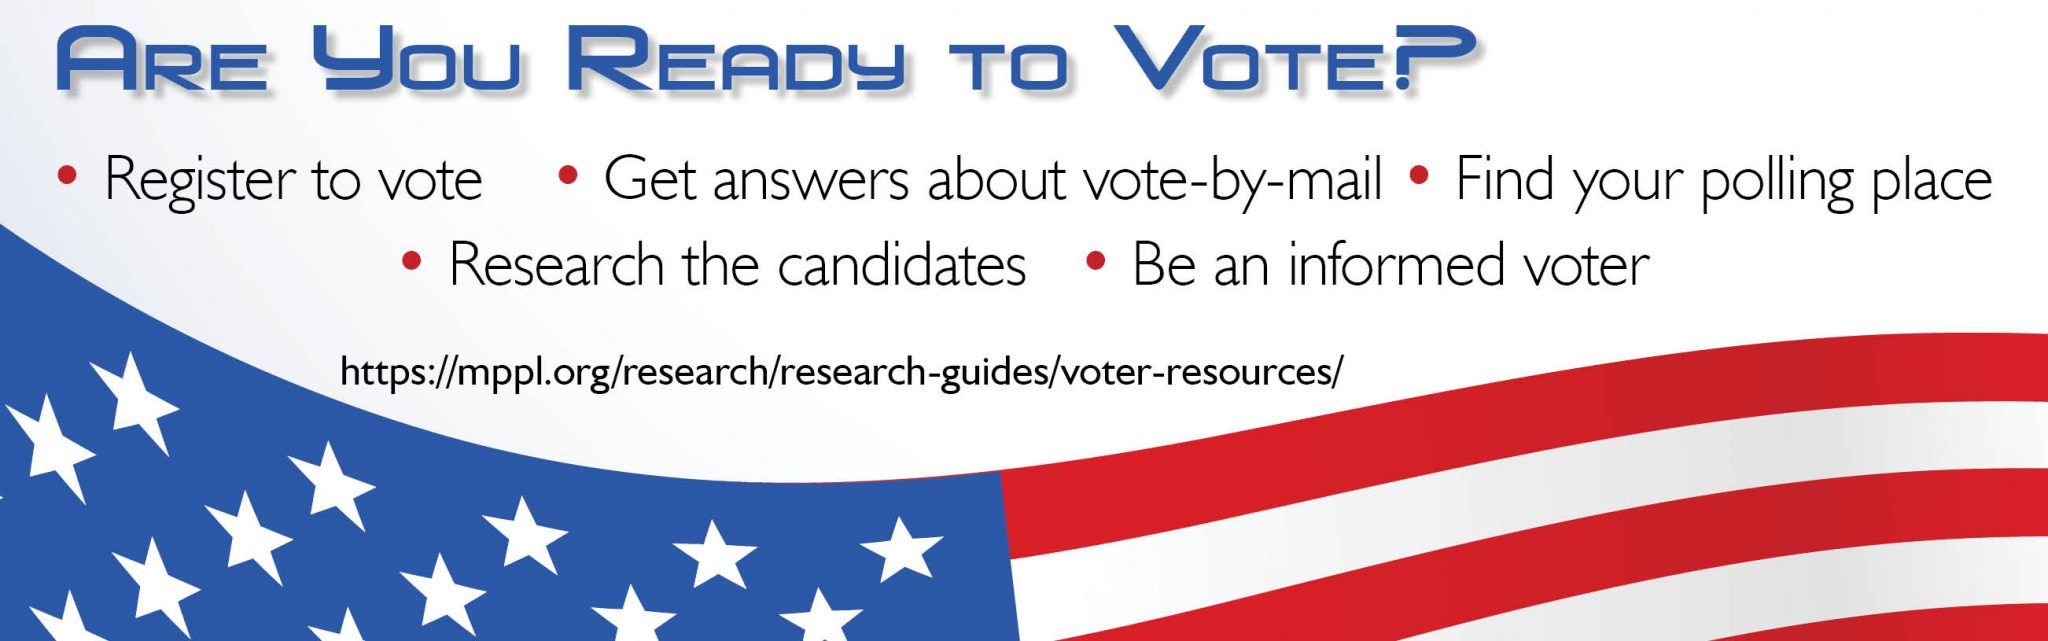 Are you ready to vote? Register to vote, get answers about vote-by-mail, find your polling place, research the candidates, be an informed voter.